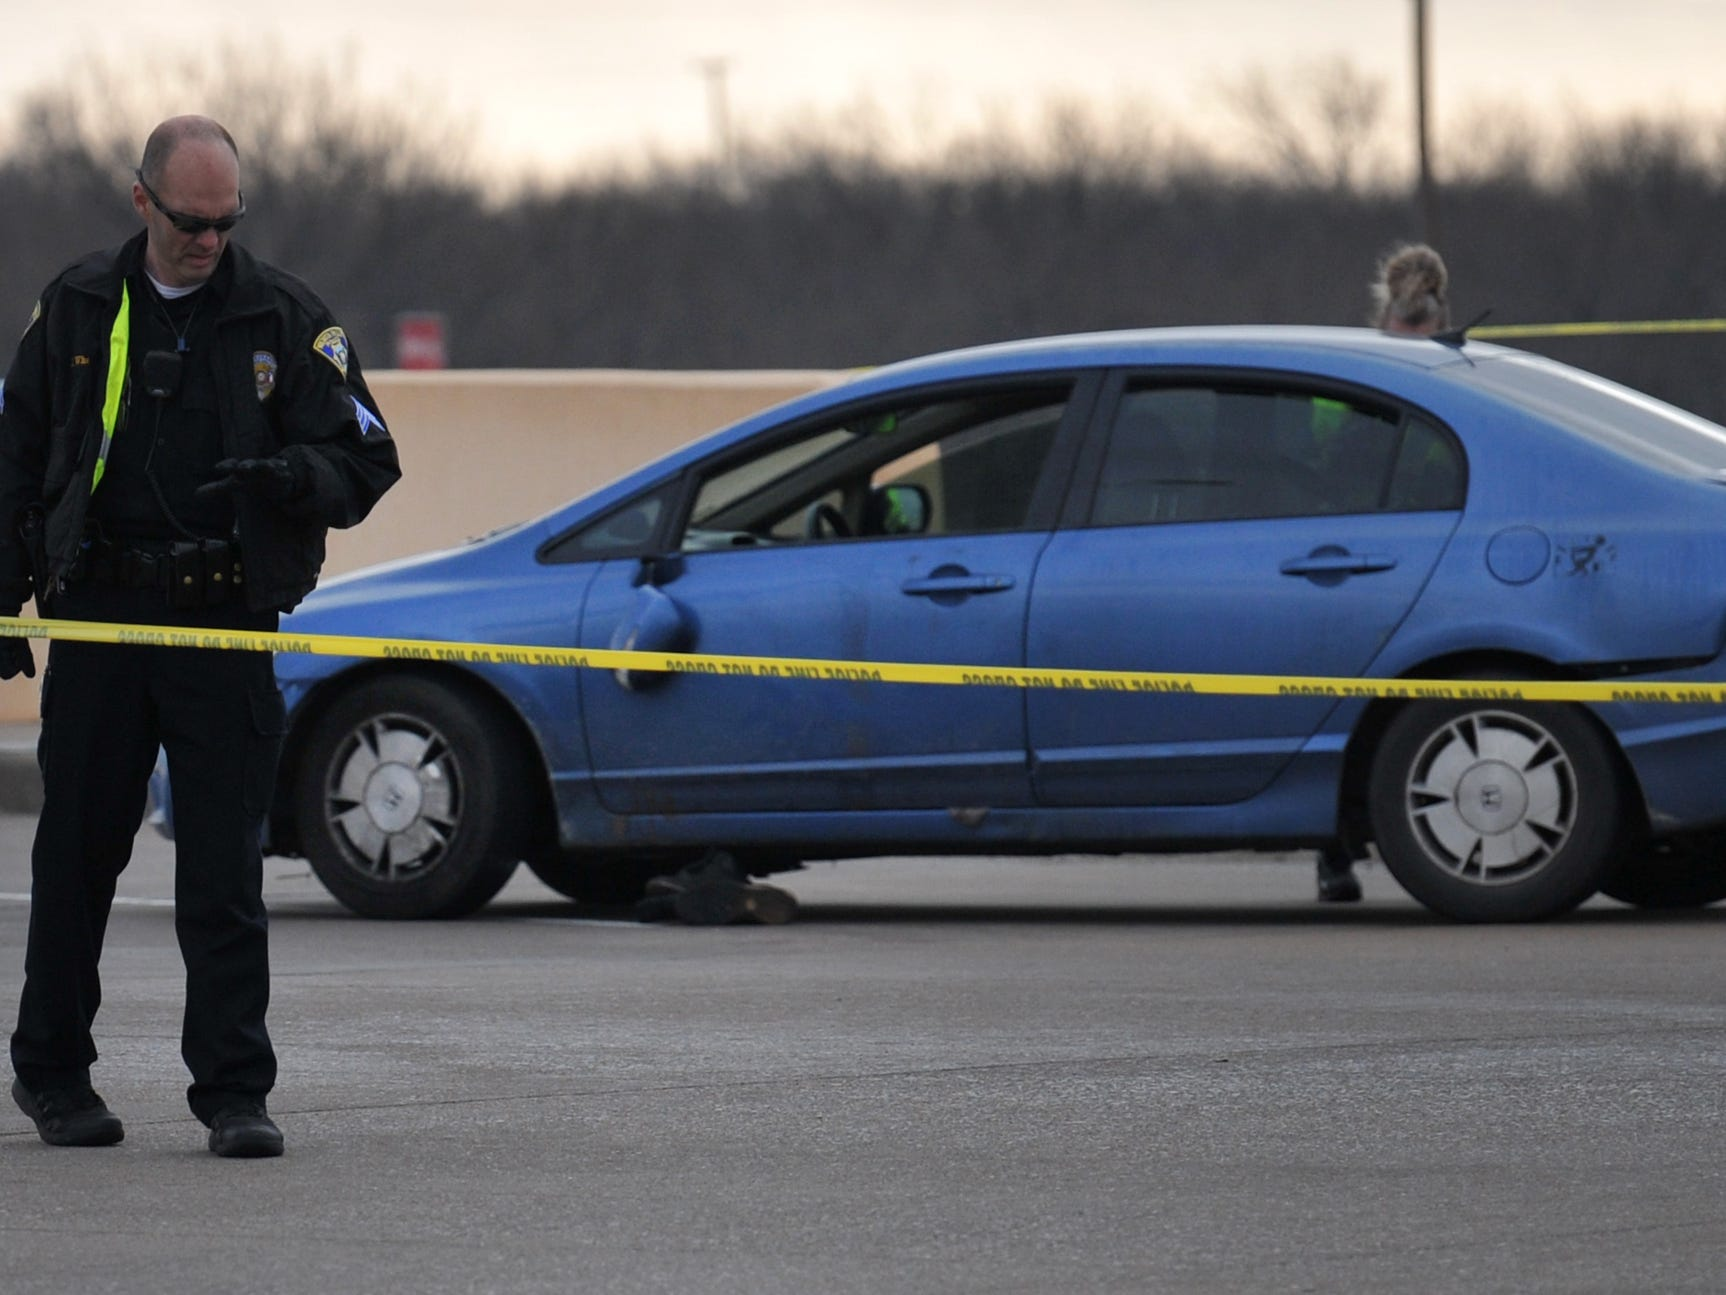 Wichita Falls police investigate the scene of an officer-involved shooting near the Airport Road at Central Freeway Access Road intersection early Sunday morning.